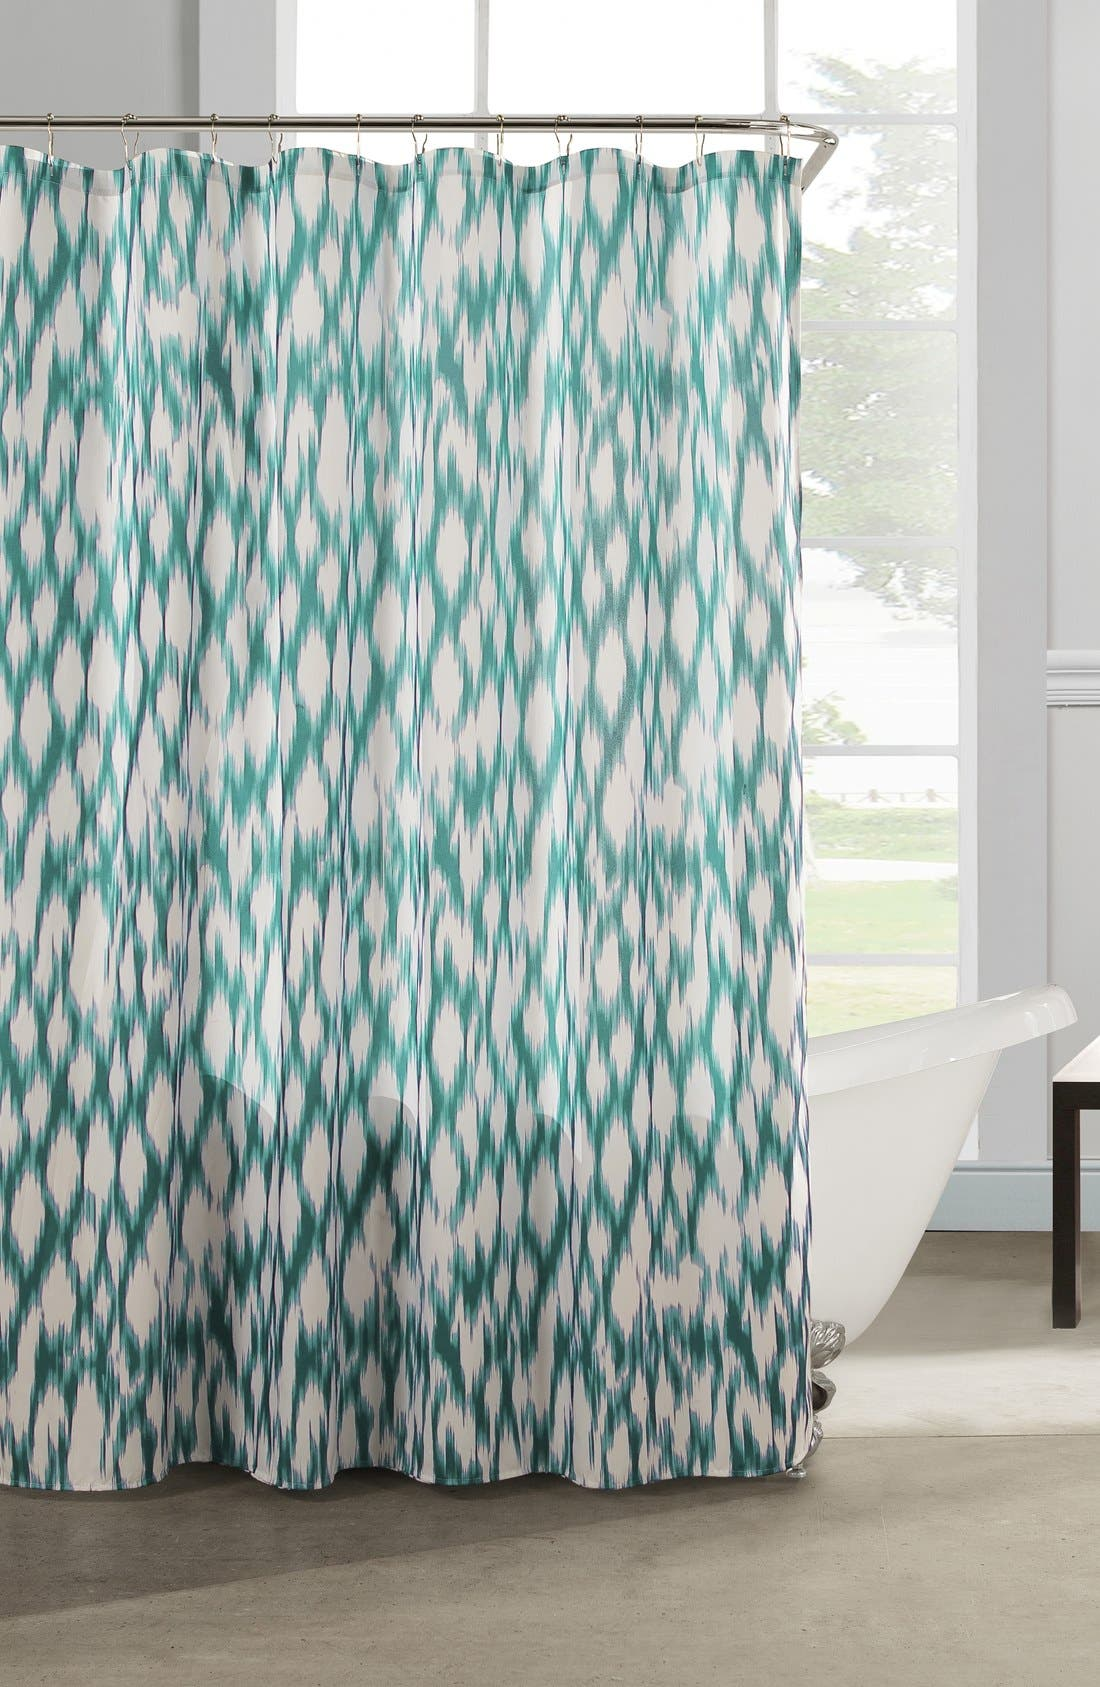 Shower Curtains Nordstrom - Brown and turquoise shower curtain